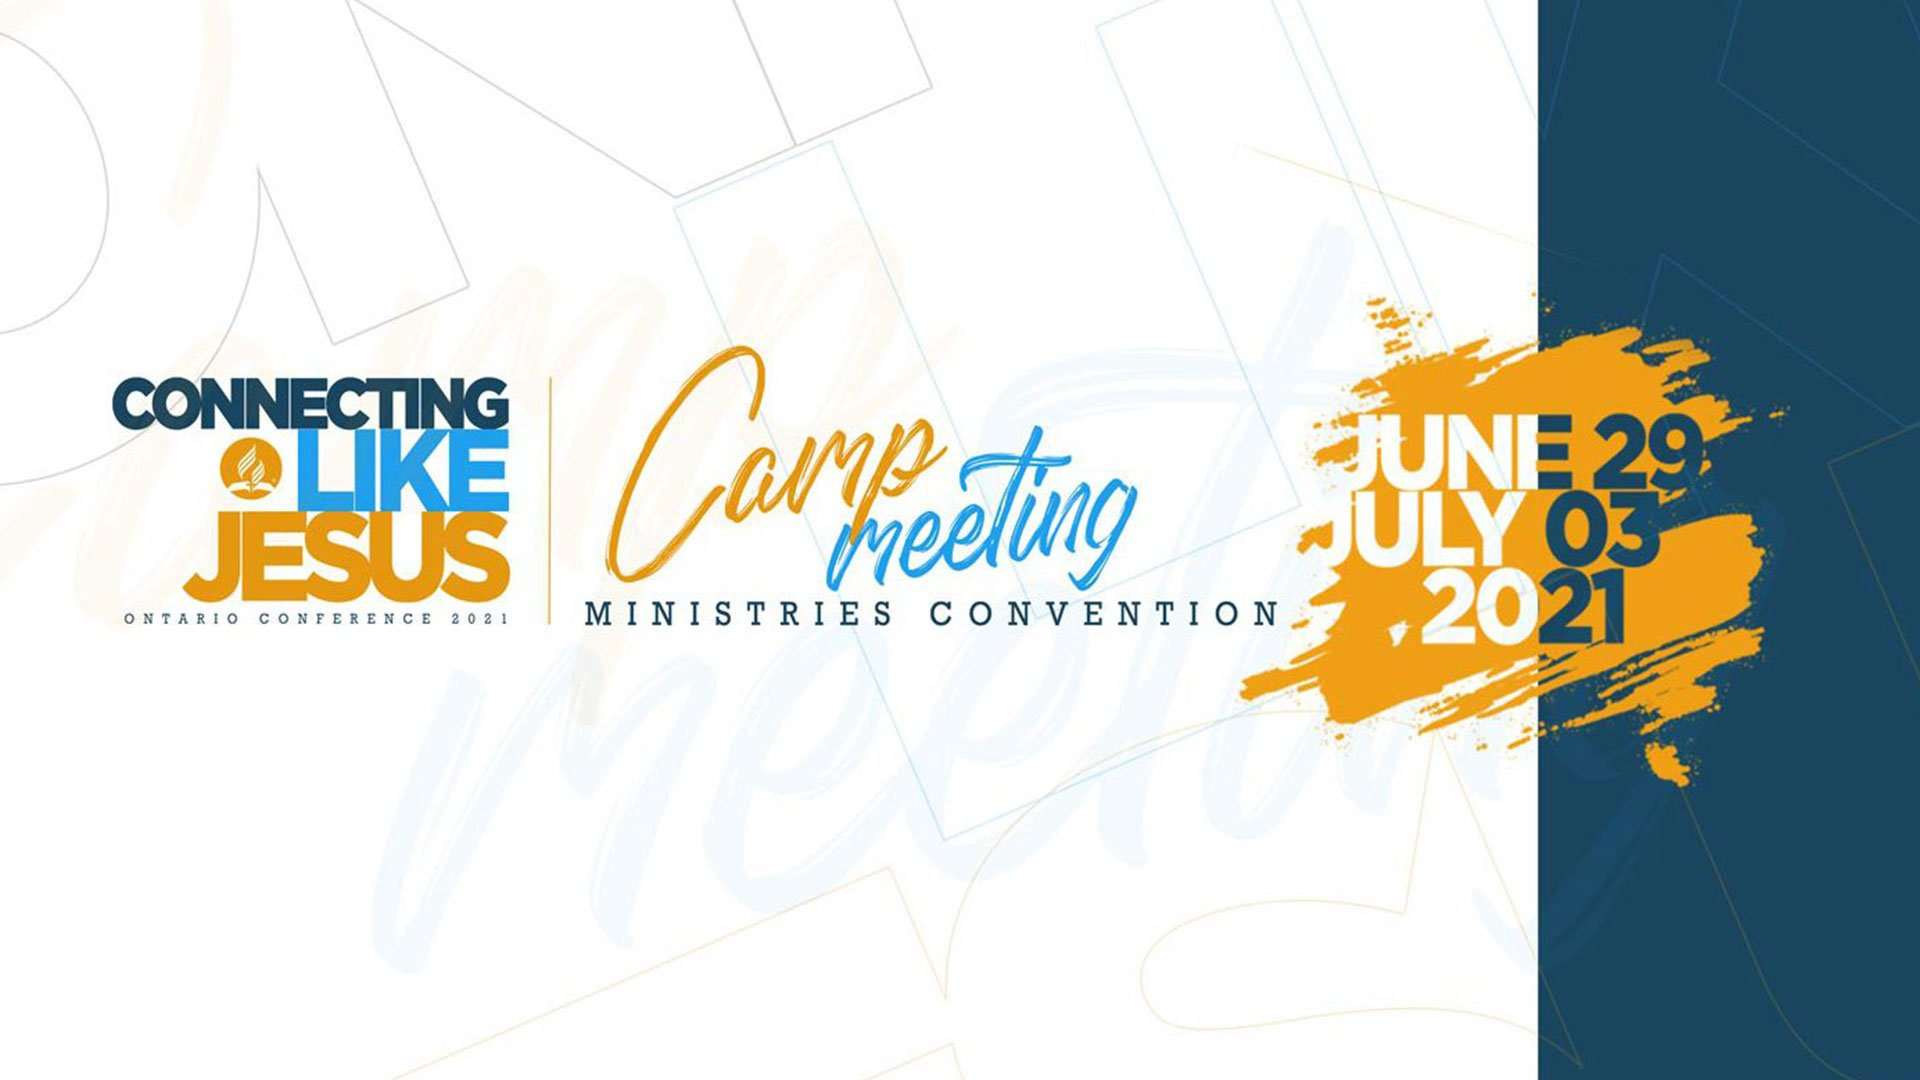 Ontario Conference Camp Meeting 2021